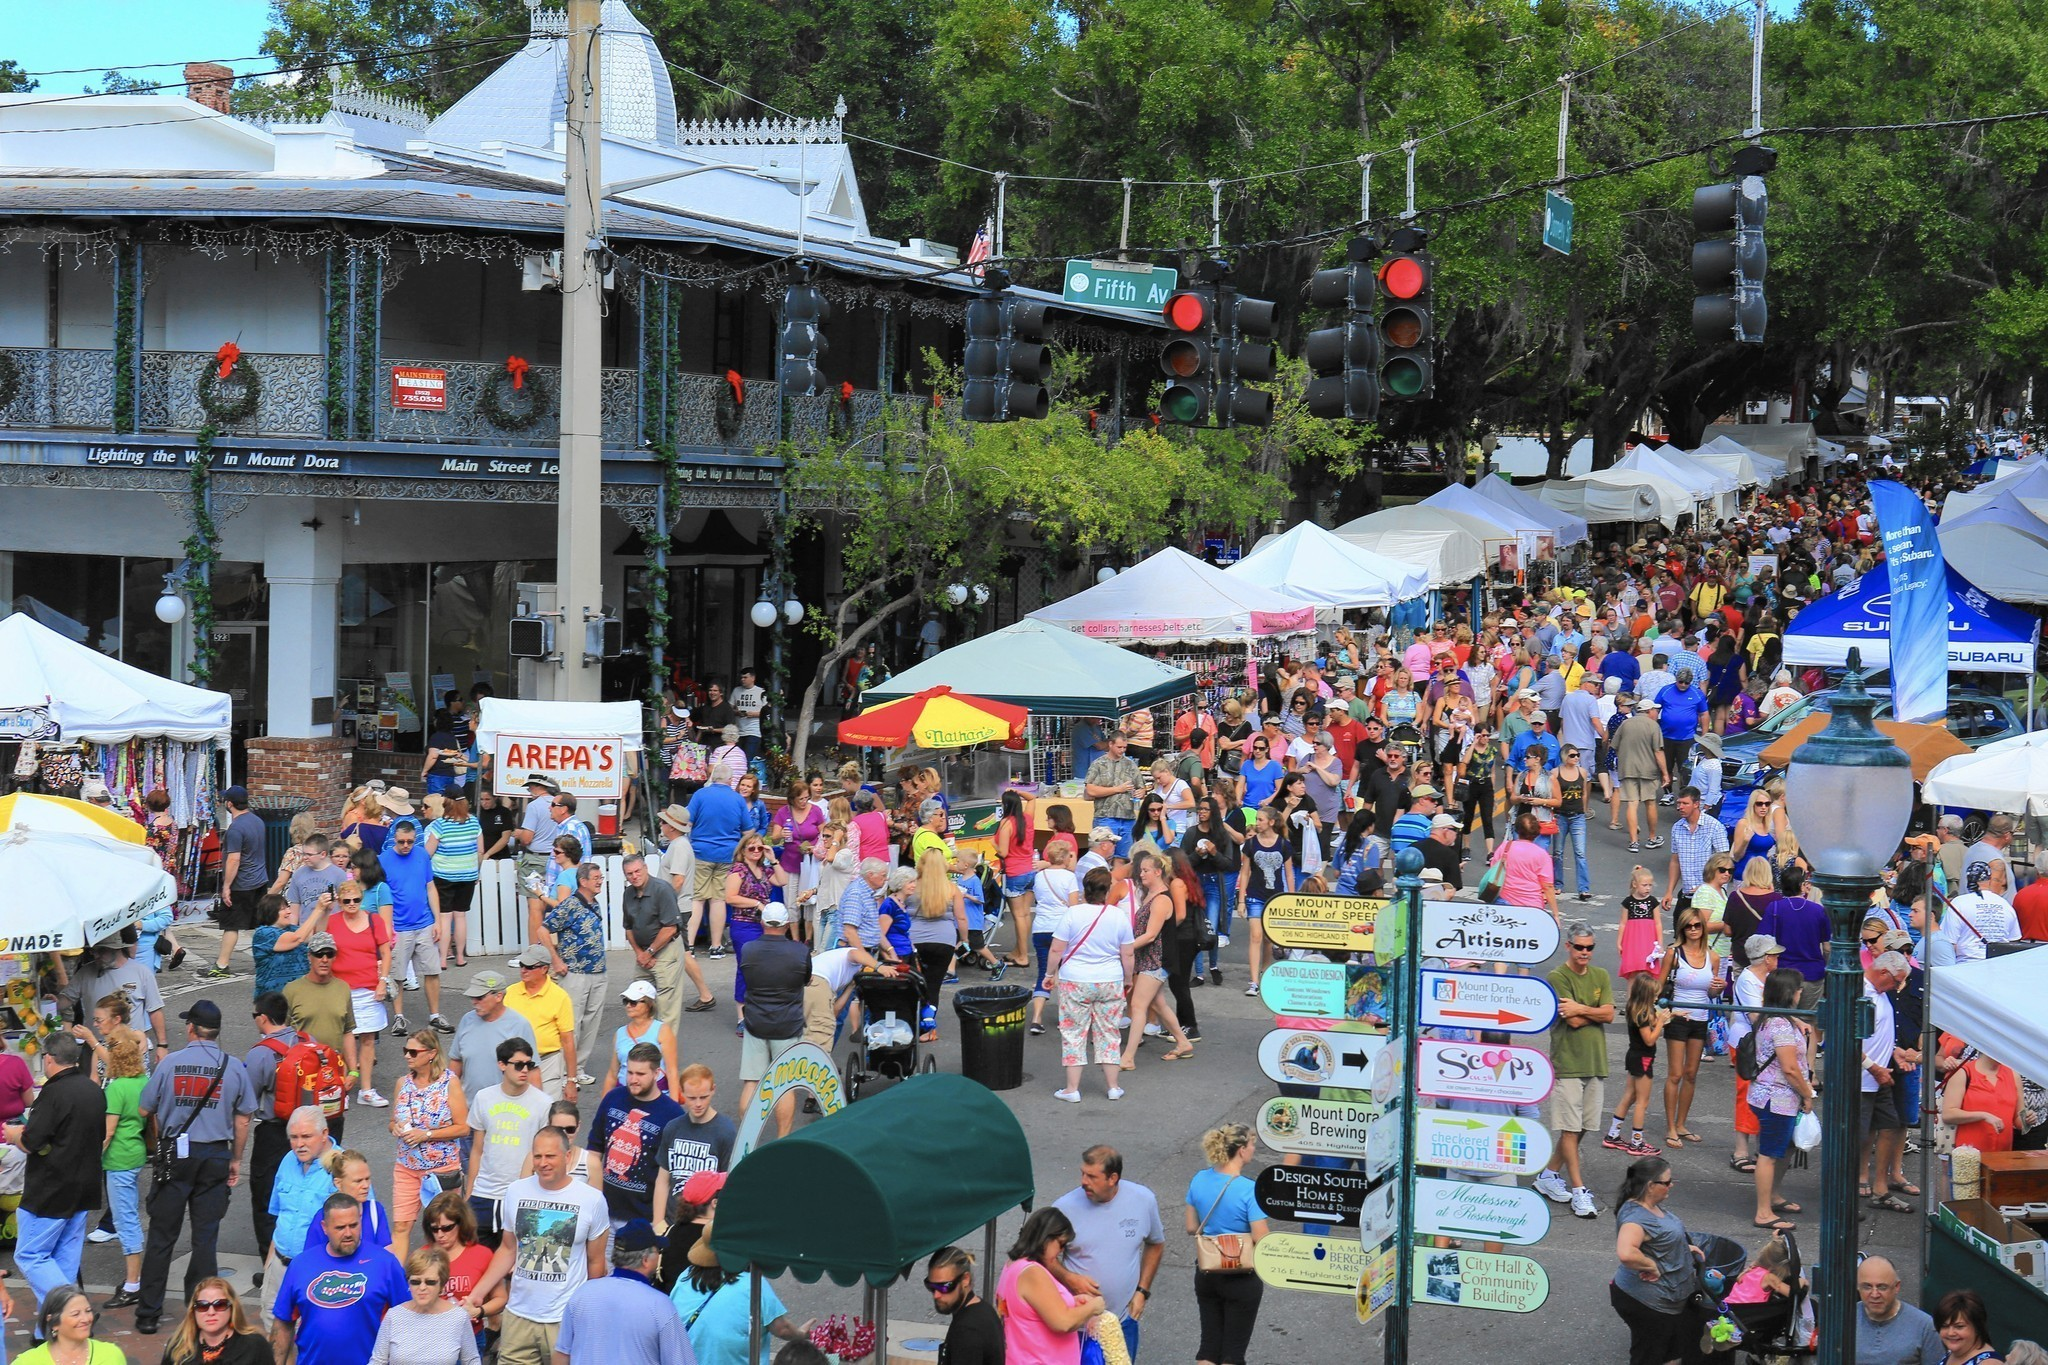 Gorgeous weather draws big crowds at mount dora craft fair for Arts and crafts shows in florida